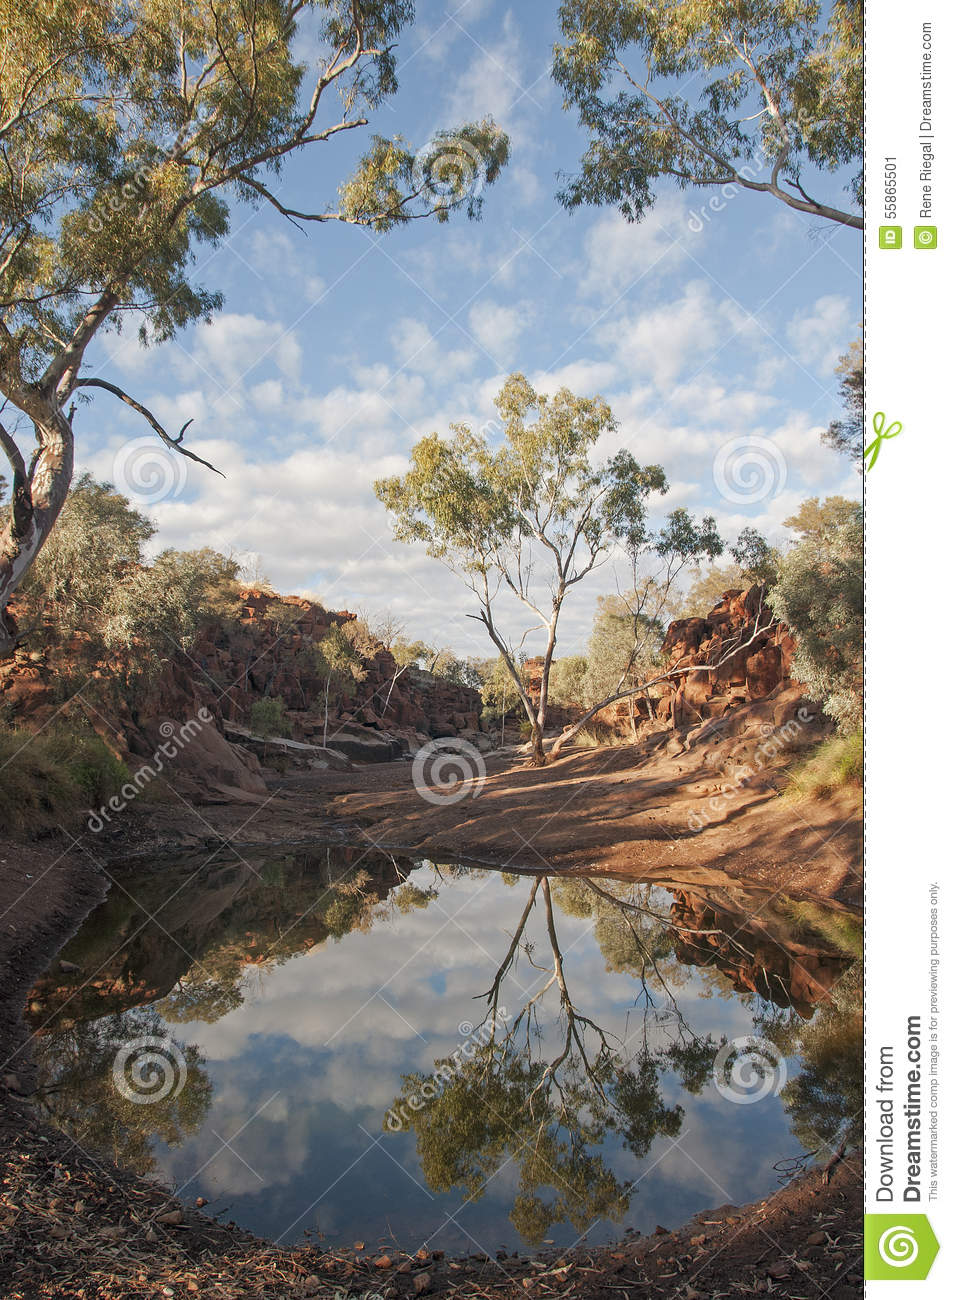 Creek, billabong in Australia, ancient indigenous peoples site for the public